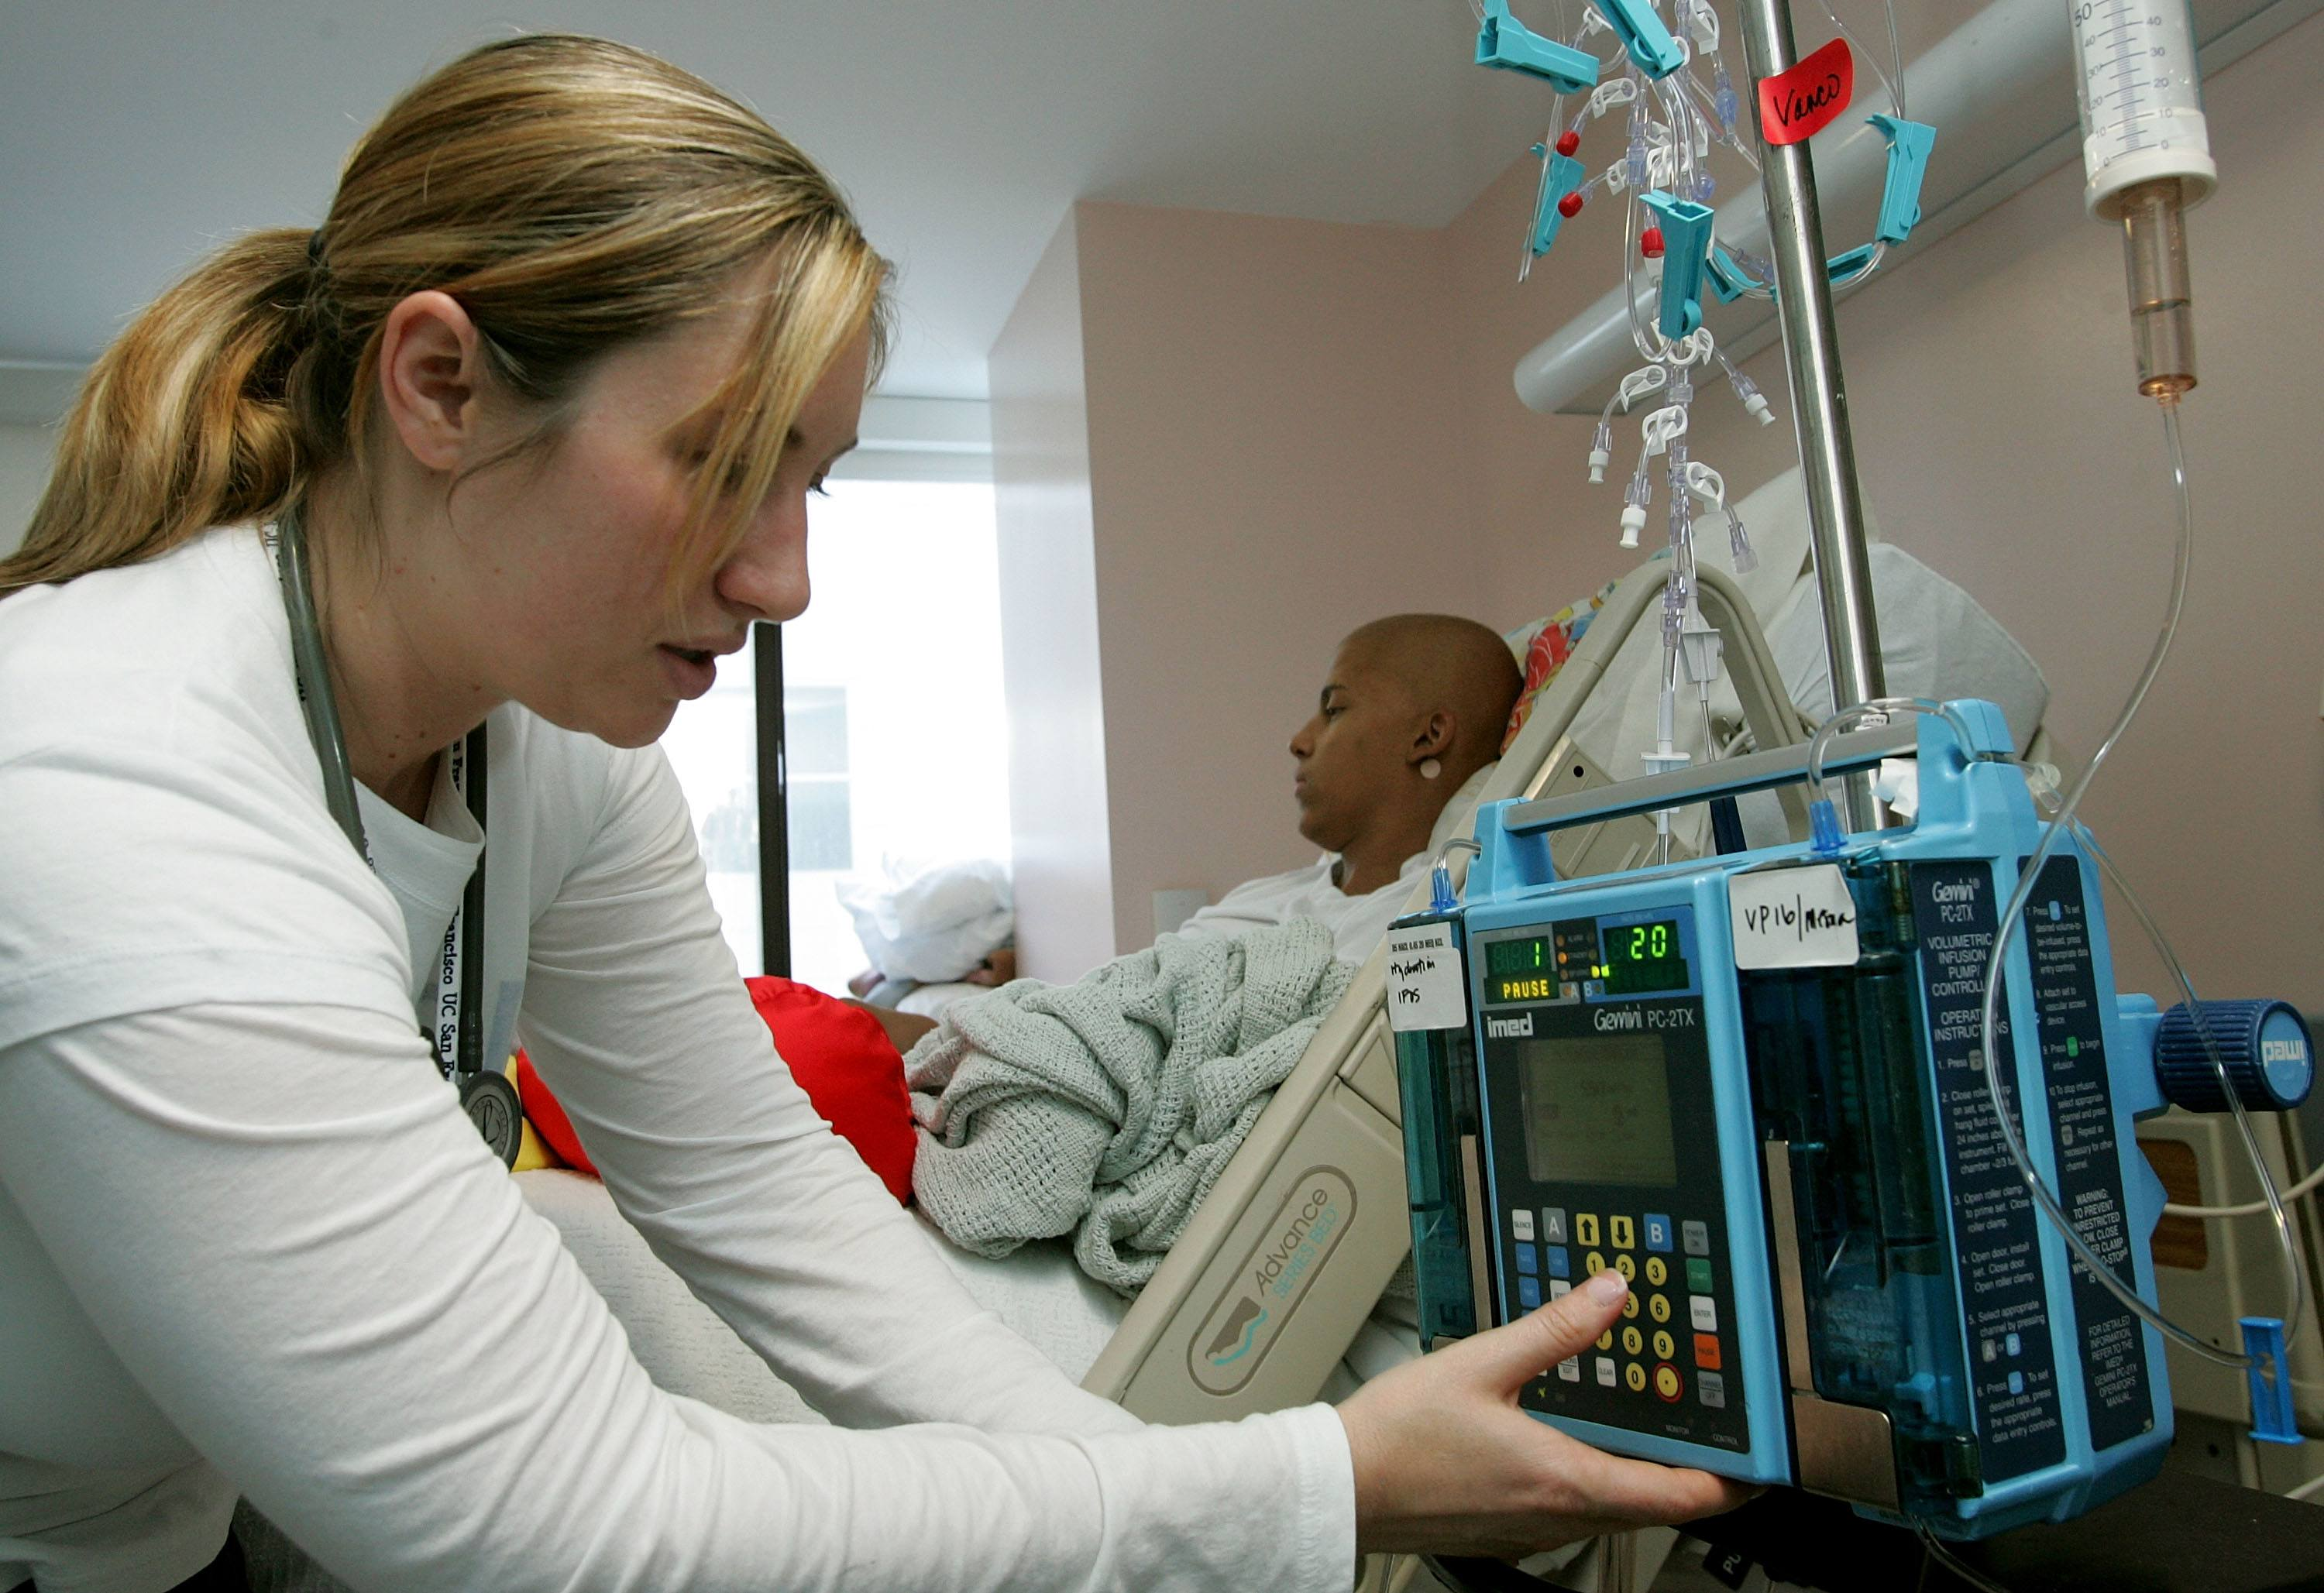 A registered nurse adjusts an IV drip machine